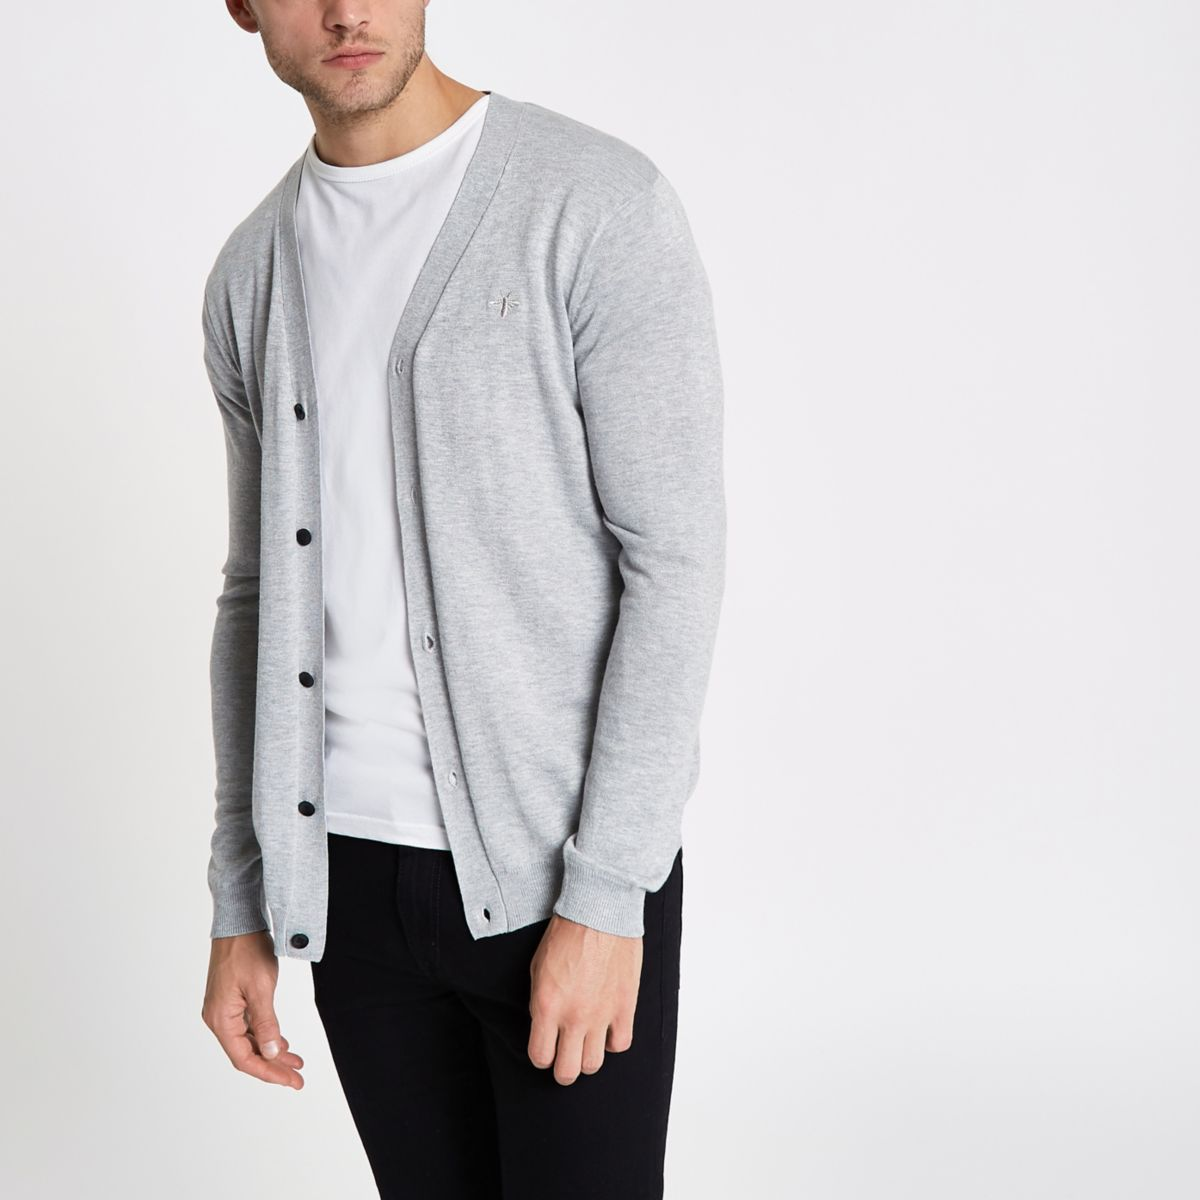 Grey V neck button-up cardigan